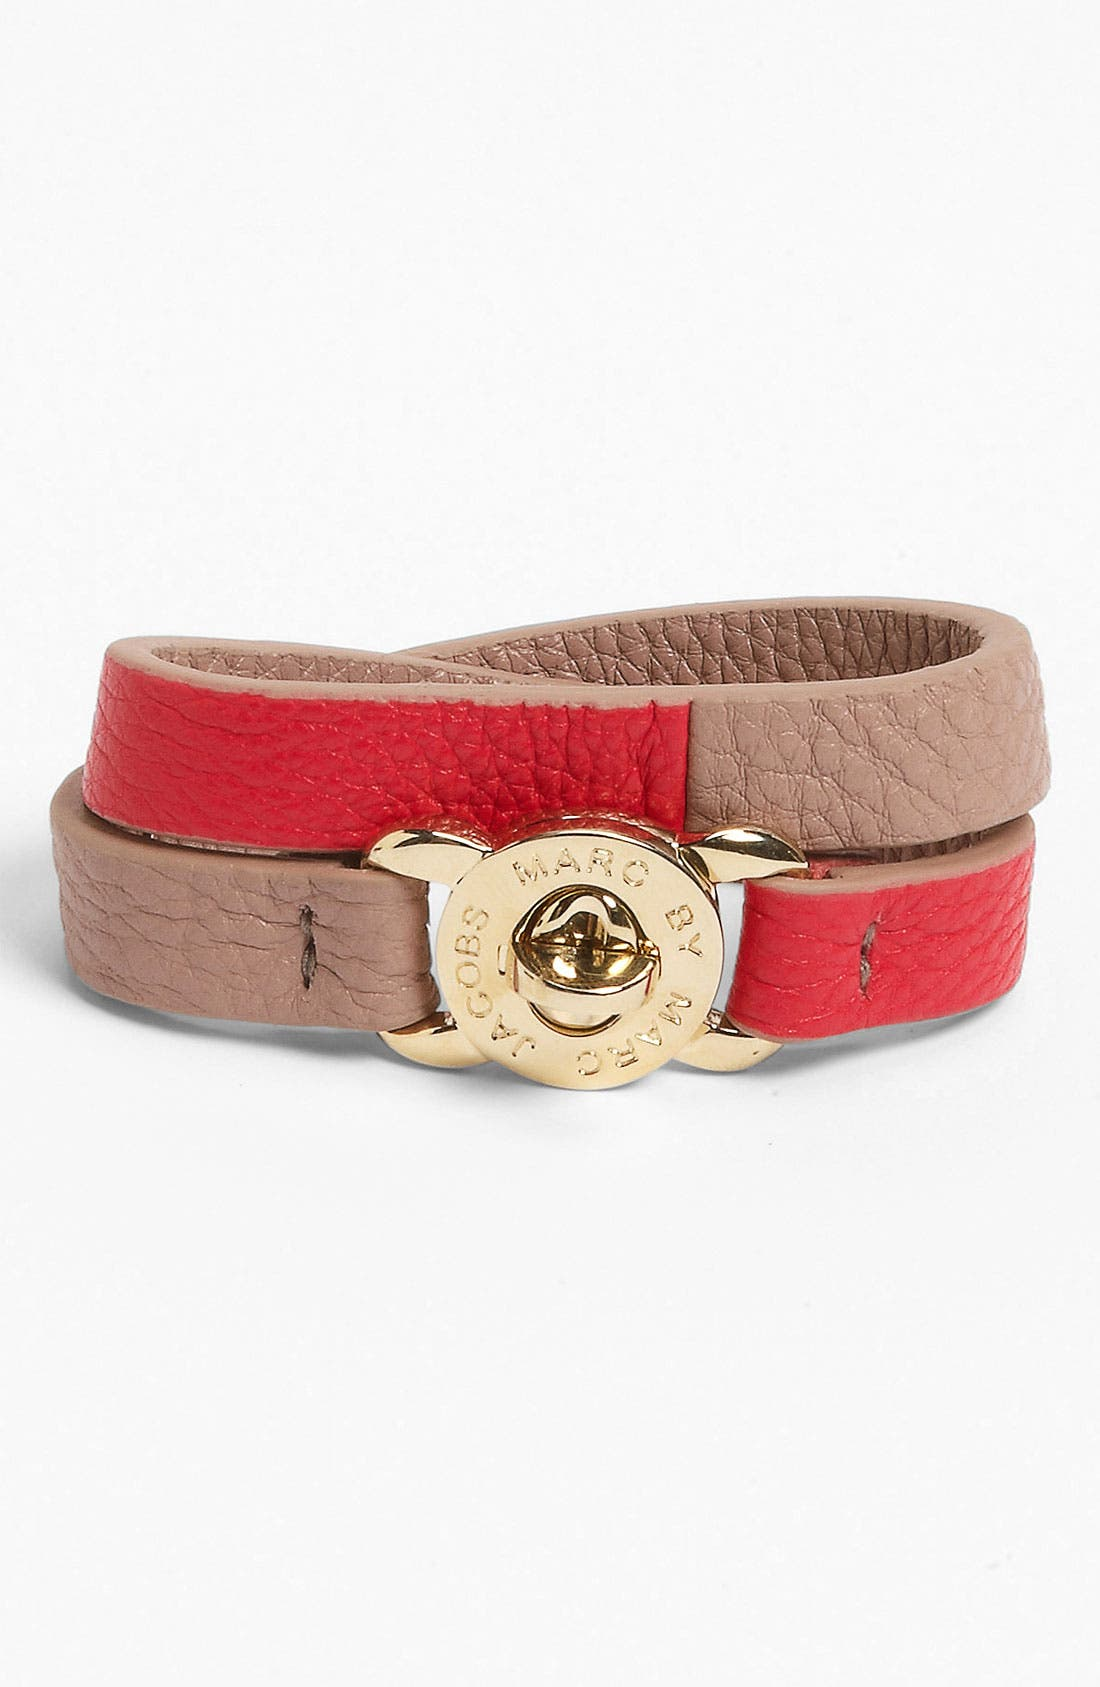 Main Image - MARC BY MARC JACOBS 'Turnlock - Katie' Leather Wrap Bracelet